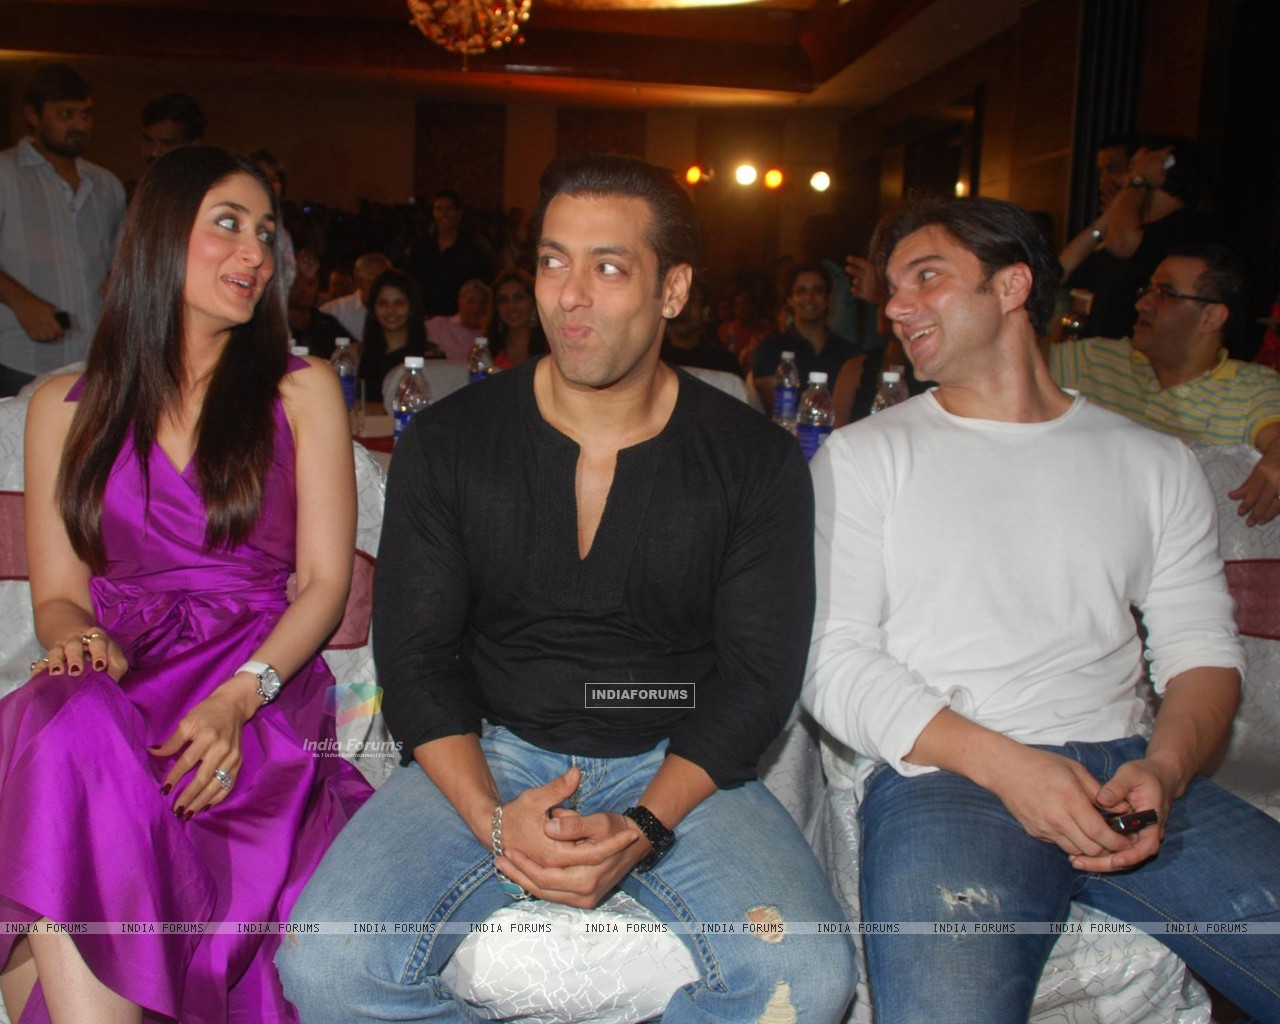 Salman Khan,Sohail Khan and Kareena Kapoor Main aur Mrs Khanna music launch (79582) size:1280x1024